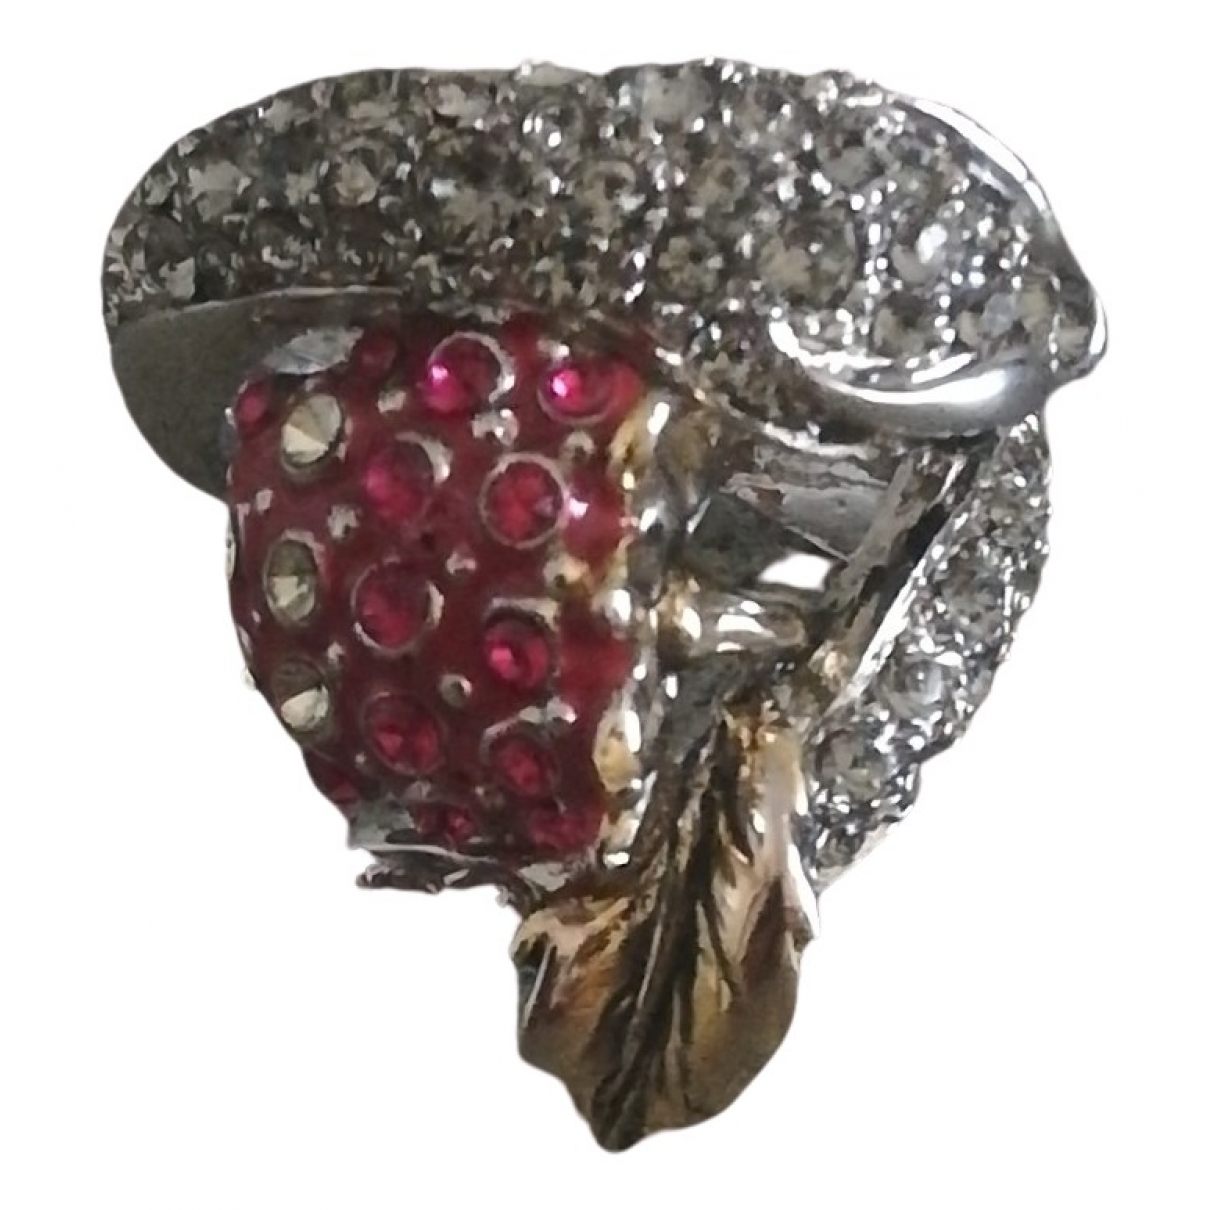 Roberto Cavalli \N Ring in  Silber Metall